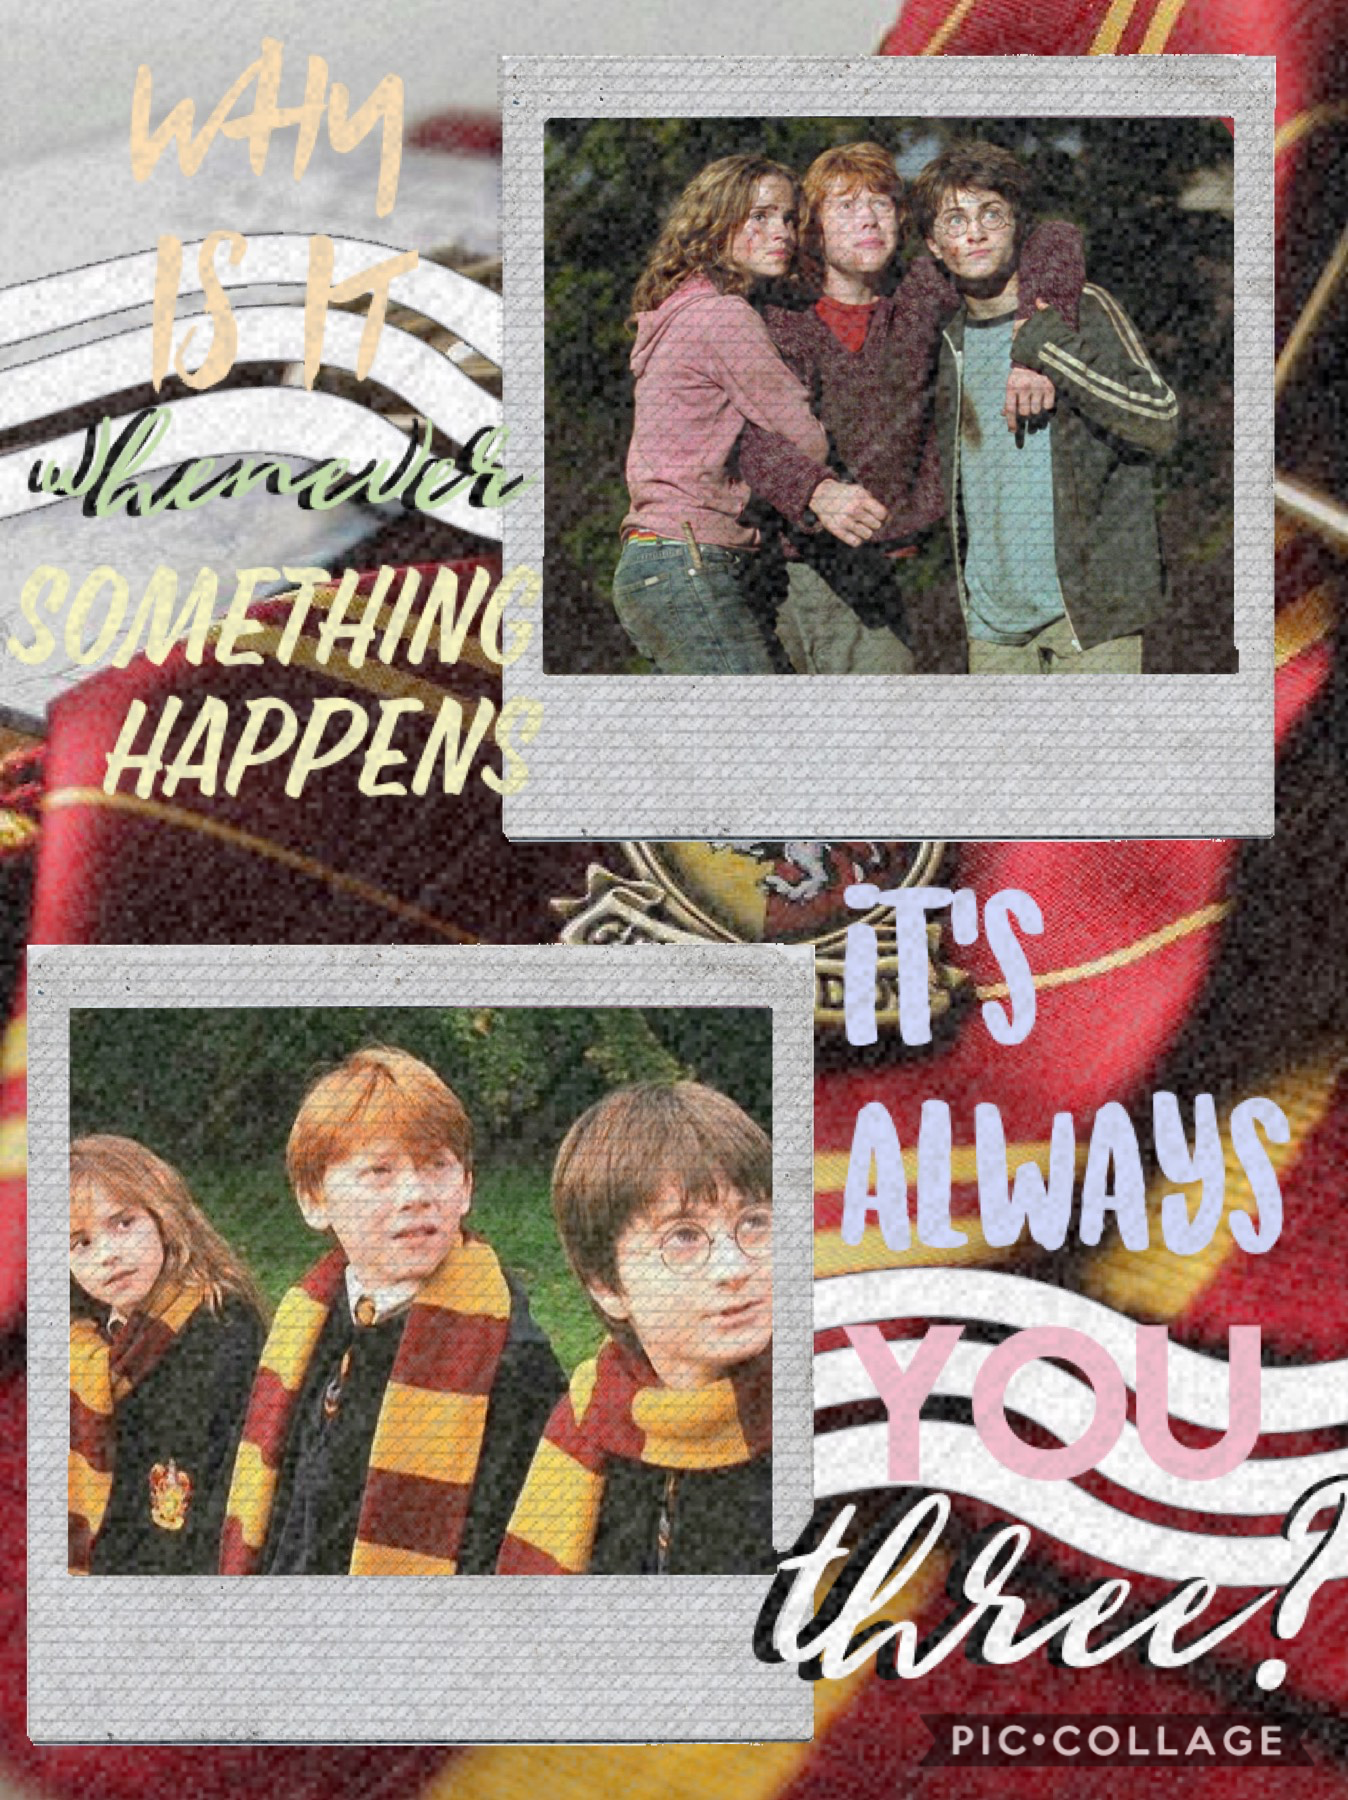 I loooove harry potter so much!!! what's your favorite book??